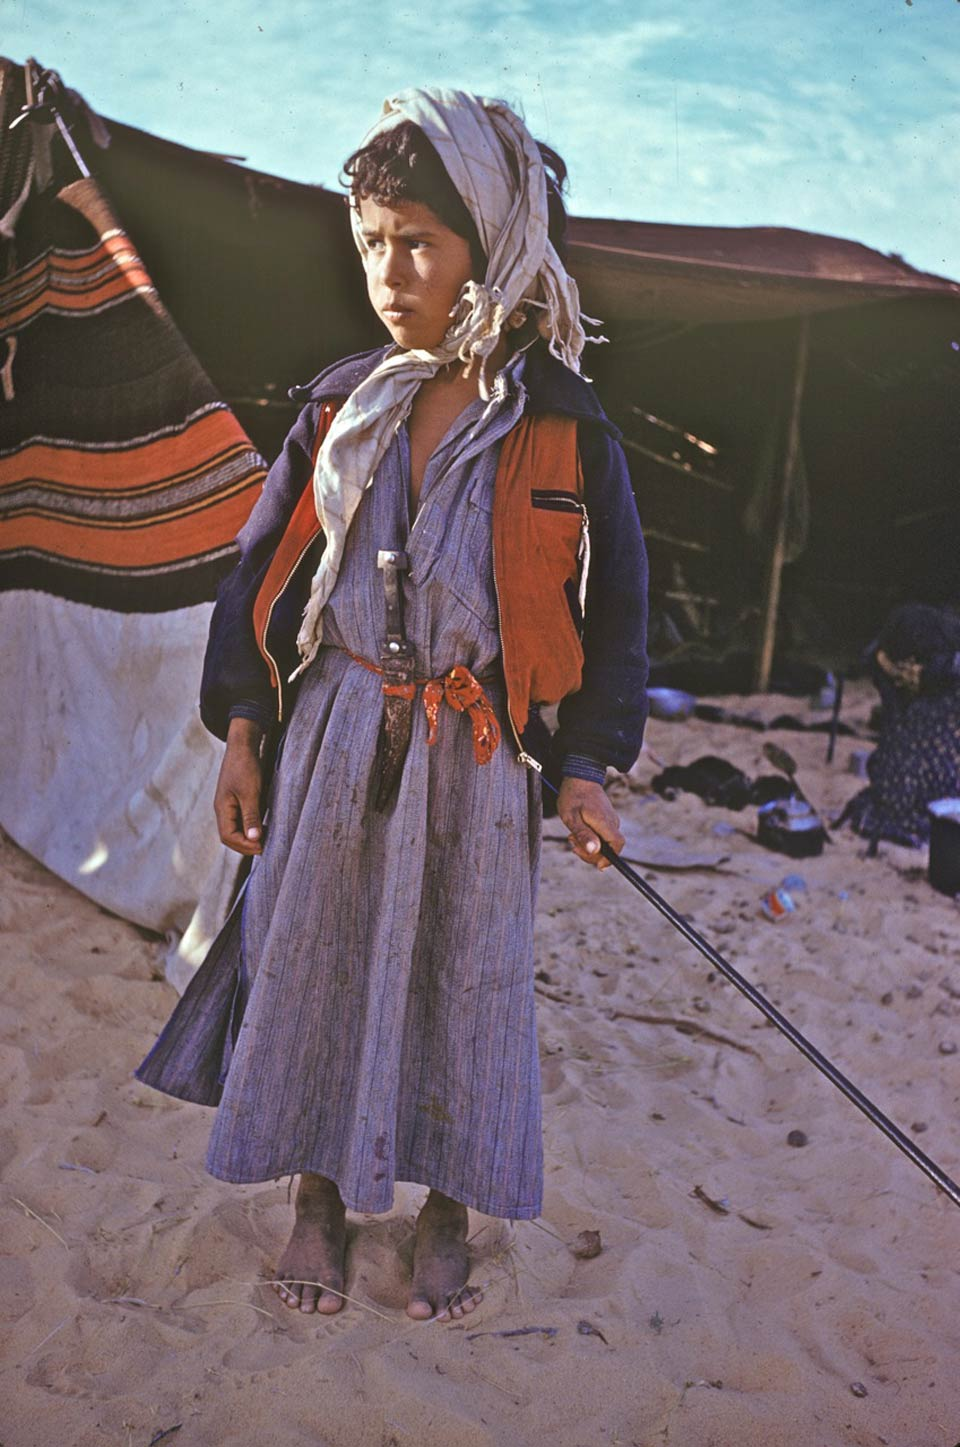 Taken at a Bedouin camp west of Abqaiq where I spent a weekend.